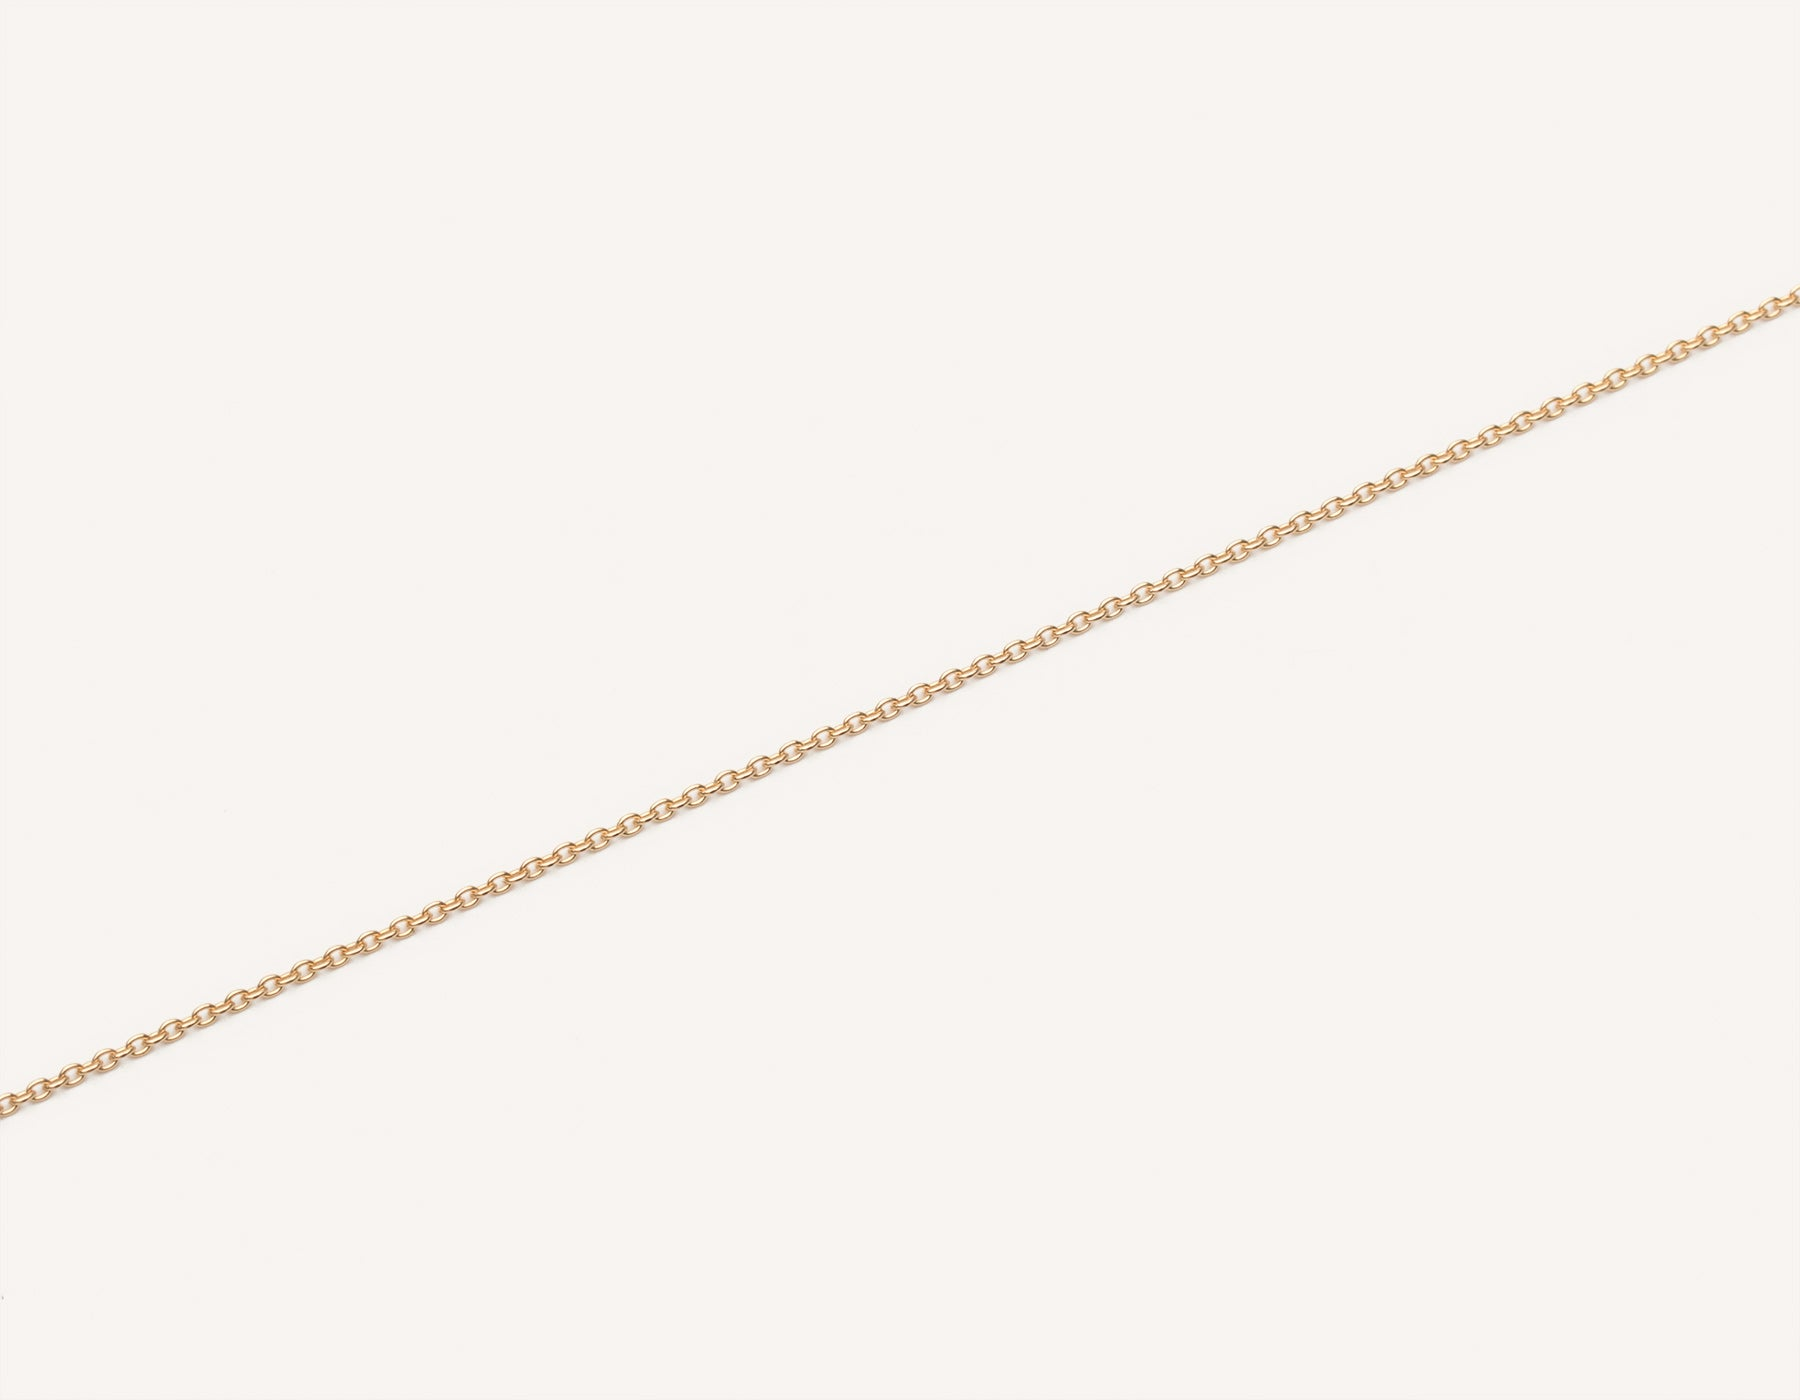 Vrai and oro simple classic 14k solid gold oval link bracelet delicate, 14K Rose Gold